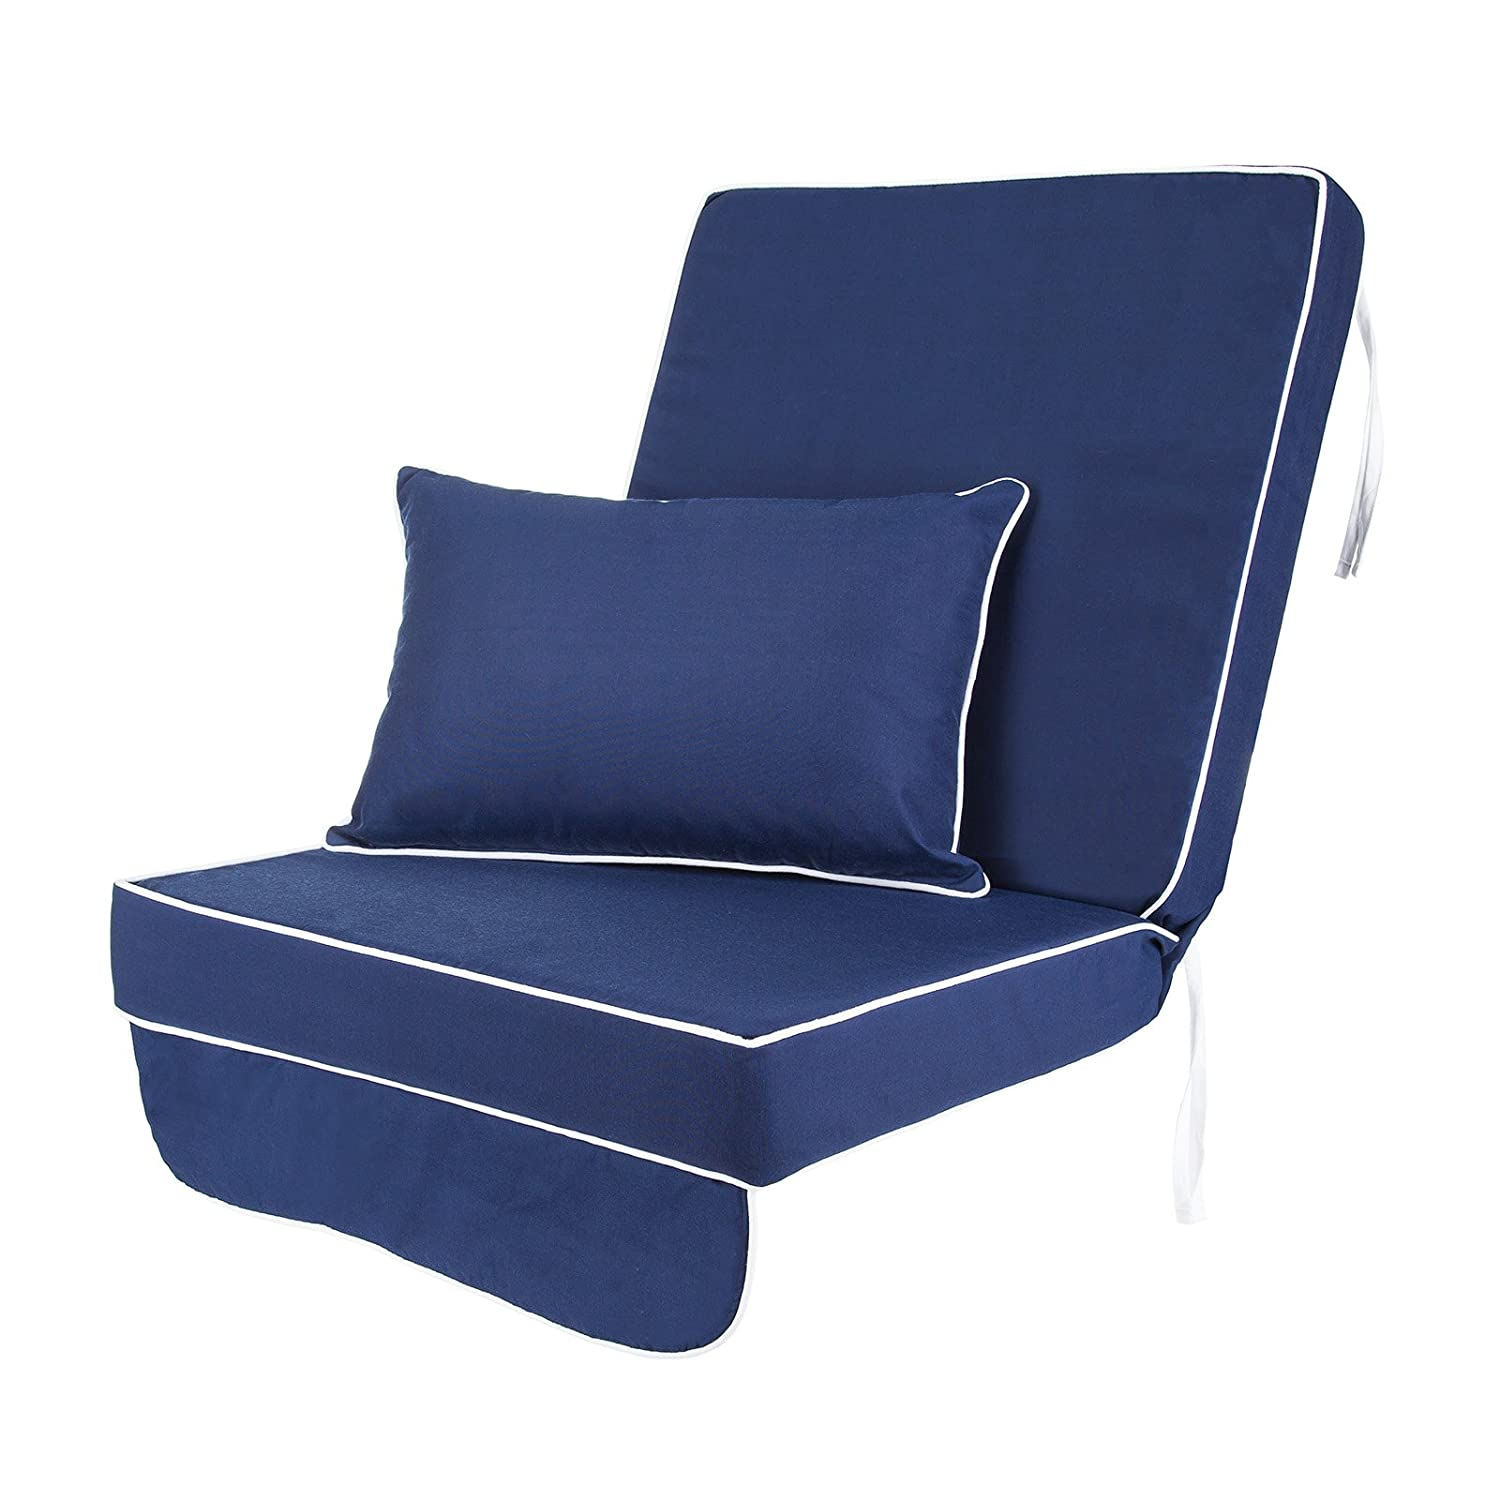 Replacement Luxury Garden Swing Seat Chair Cushion Choice of Colours (Blue with White Piping) Alfresia